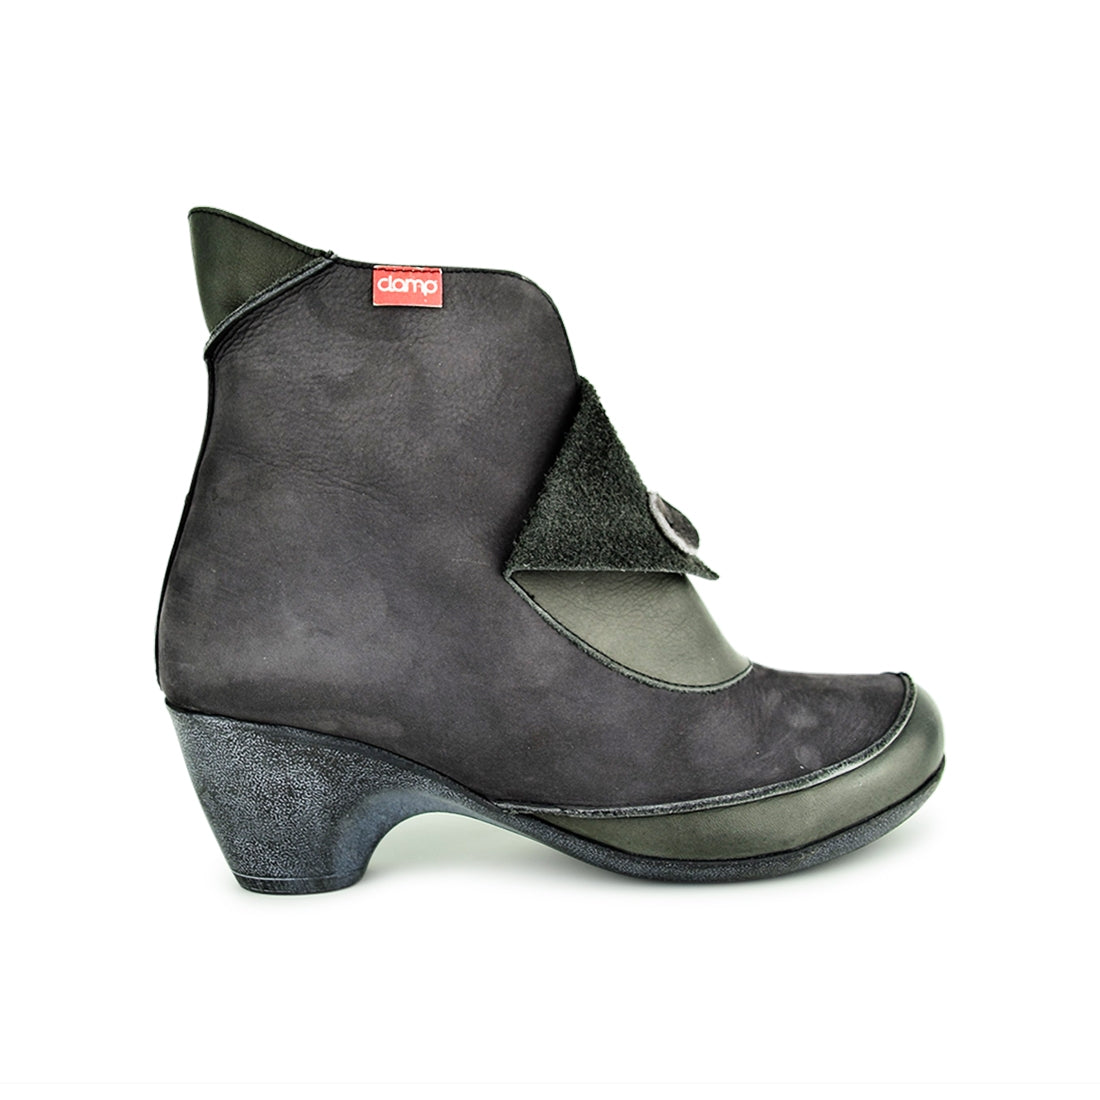 DANA2 - Clamp Ankle Boots Grey Suede